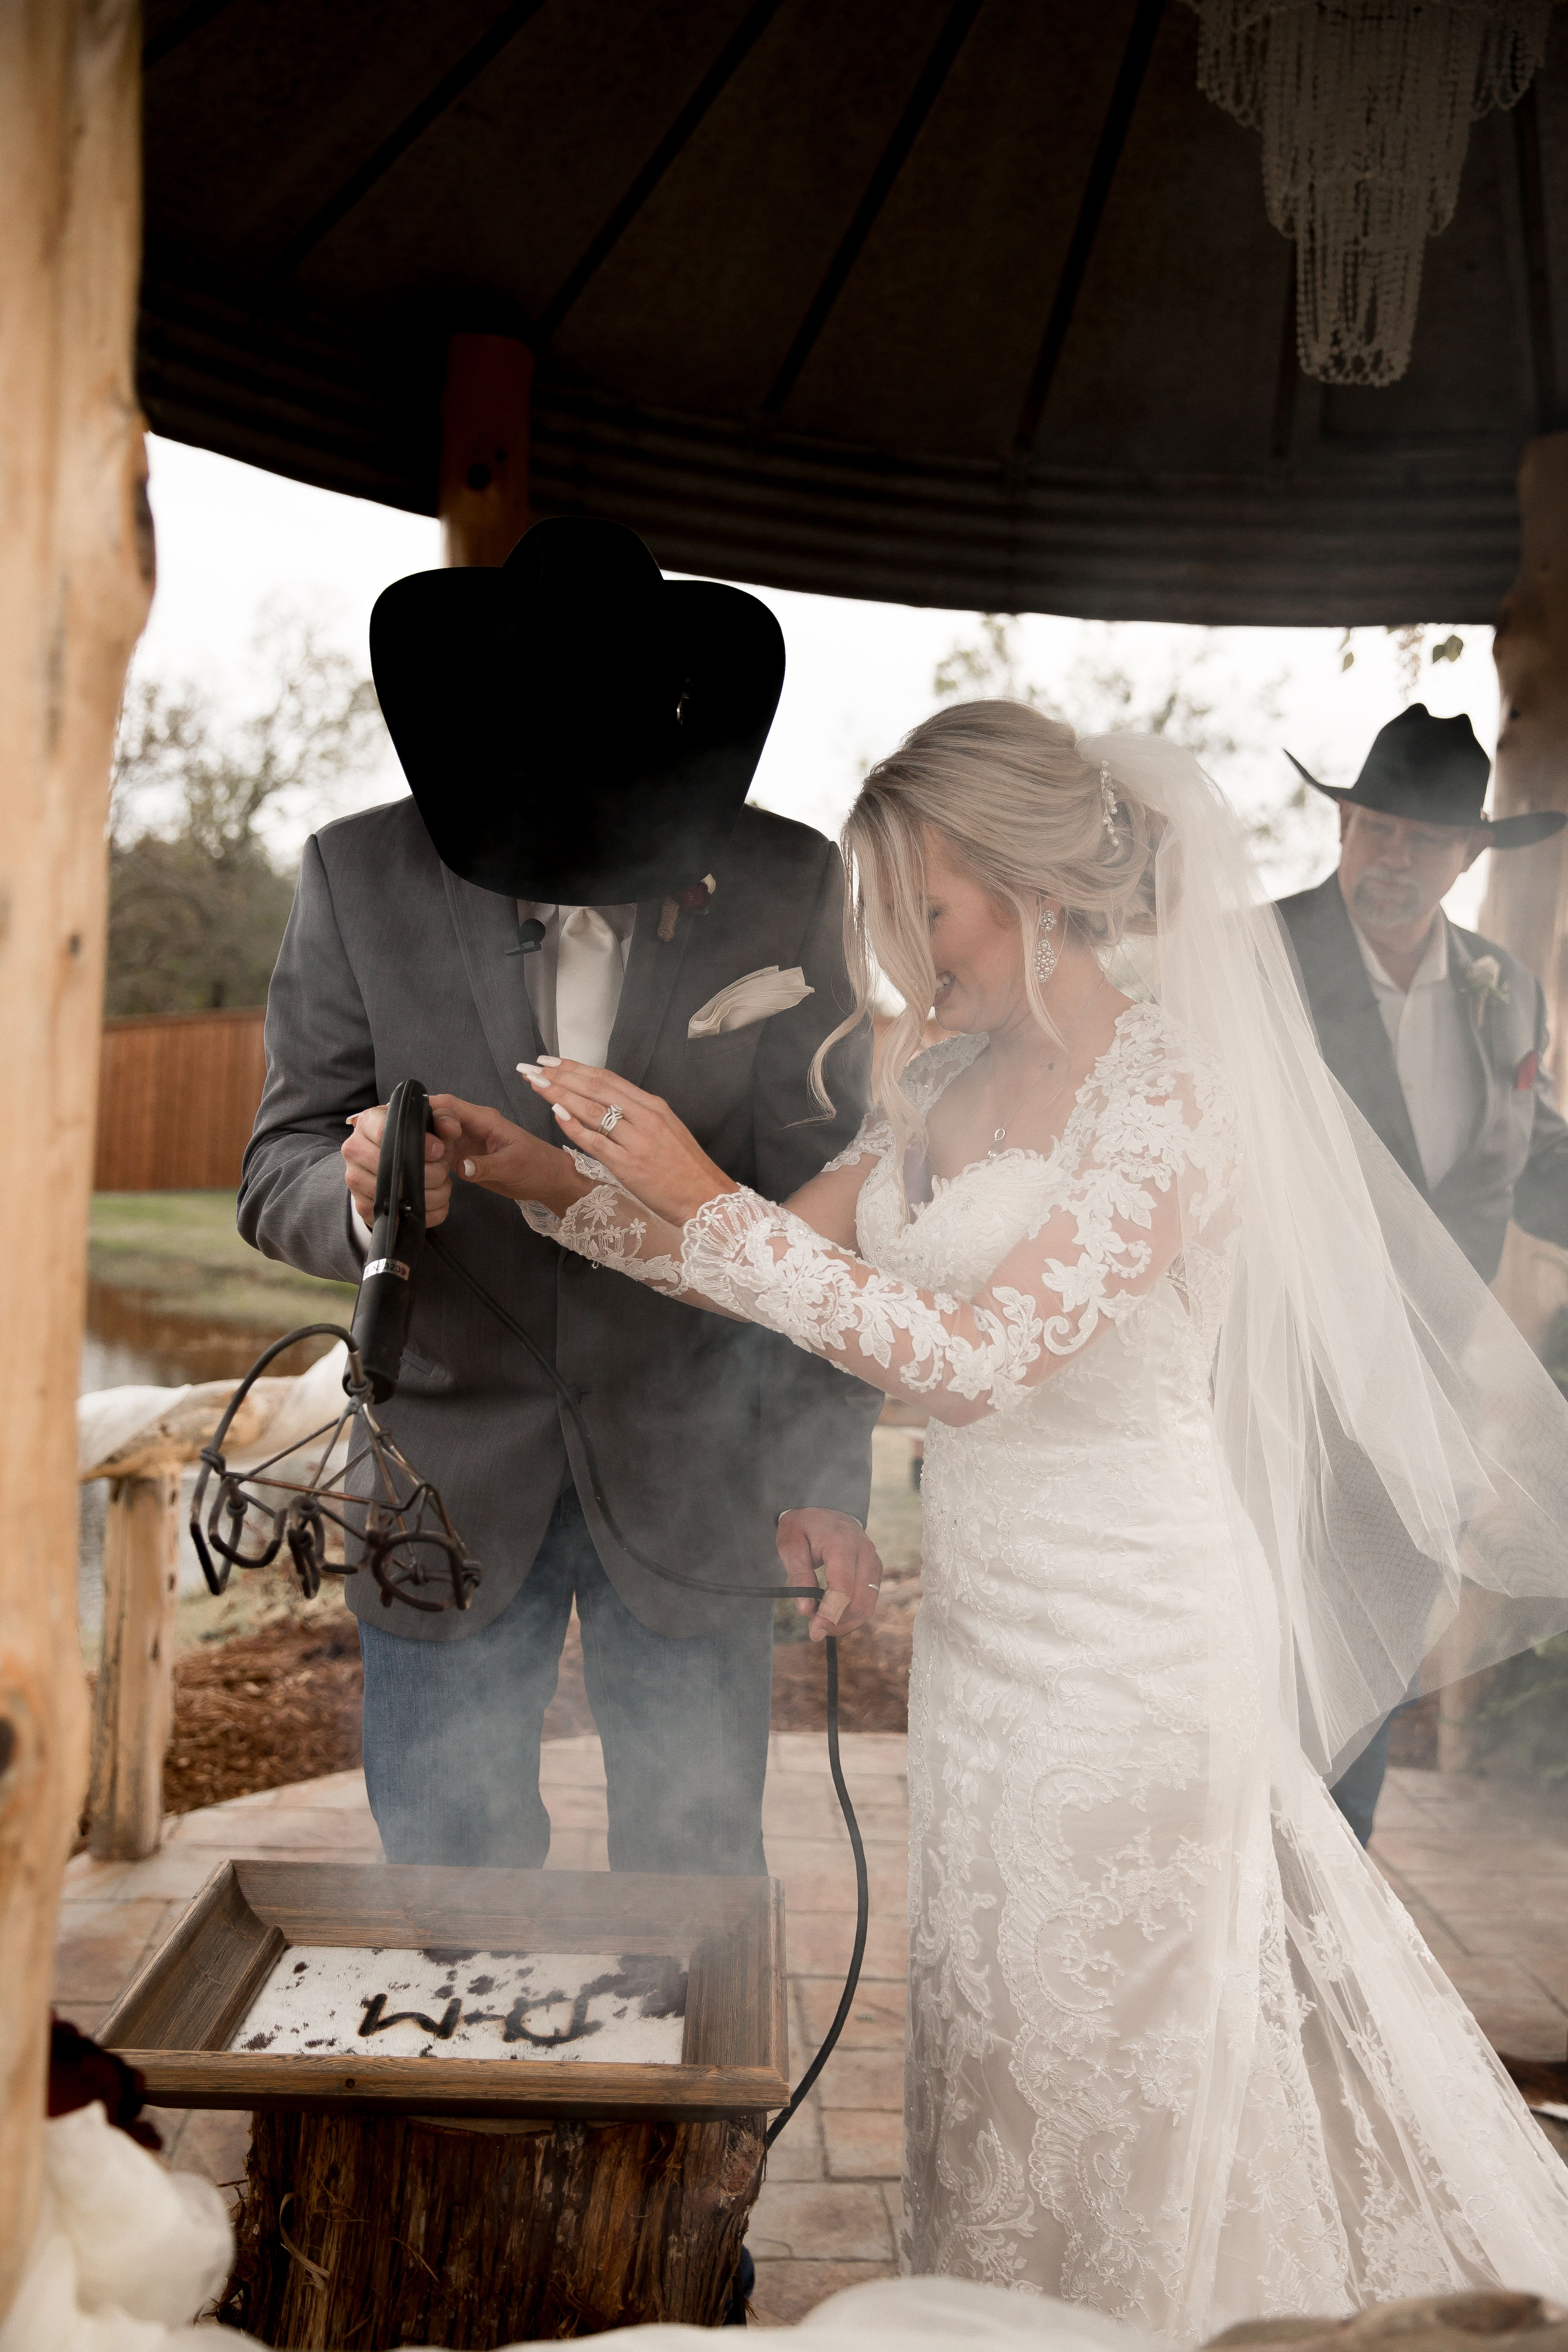 Western Ceremony Western Wedding Cowboy Goals Country Wedding Pictures Cowboy Wedding Western Wedding